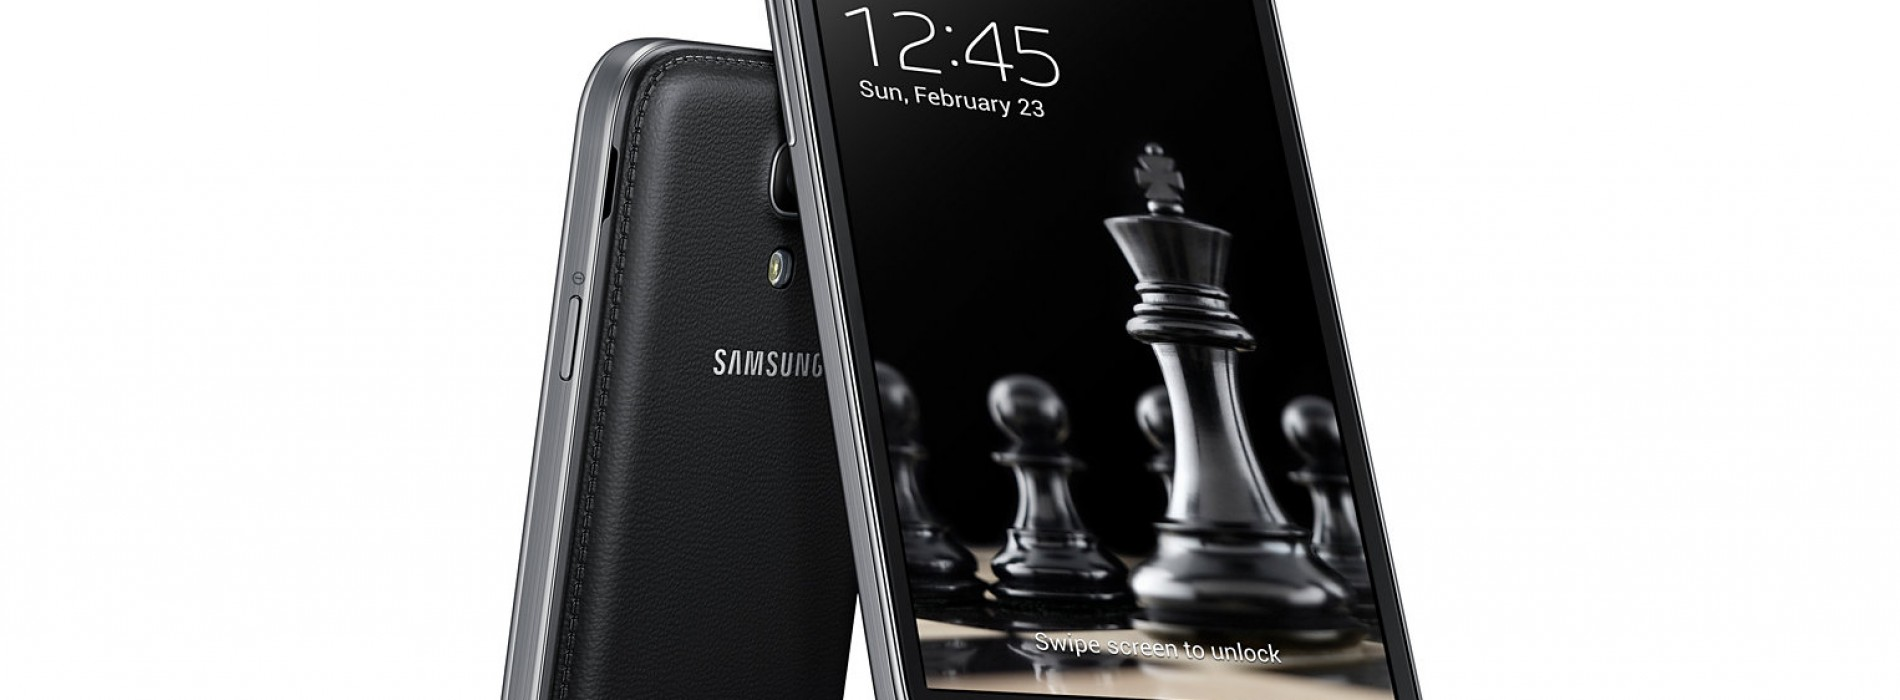 Samsung intros Black Edition Galaxy S4, S4 Mini for Russia